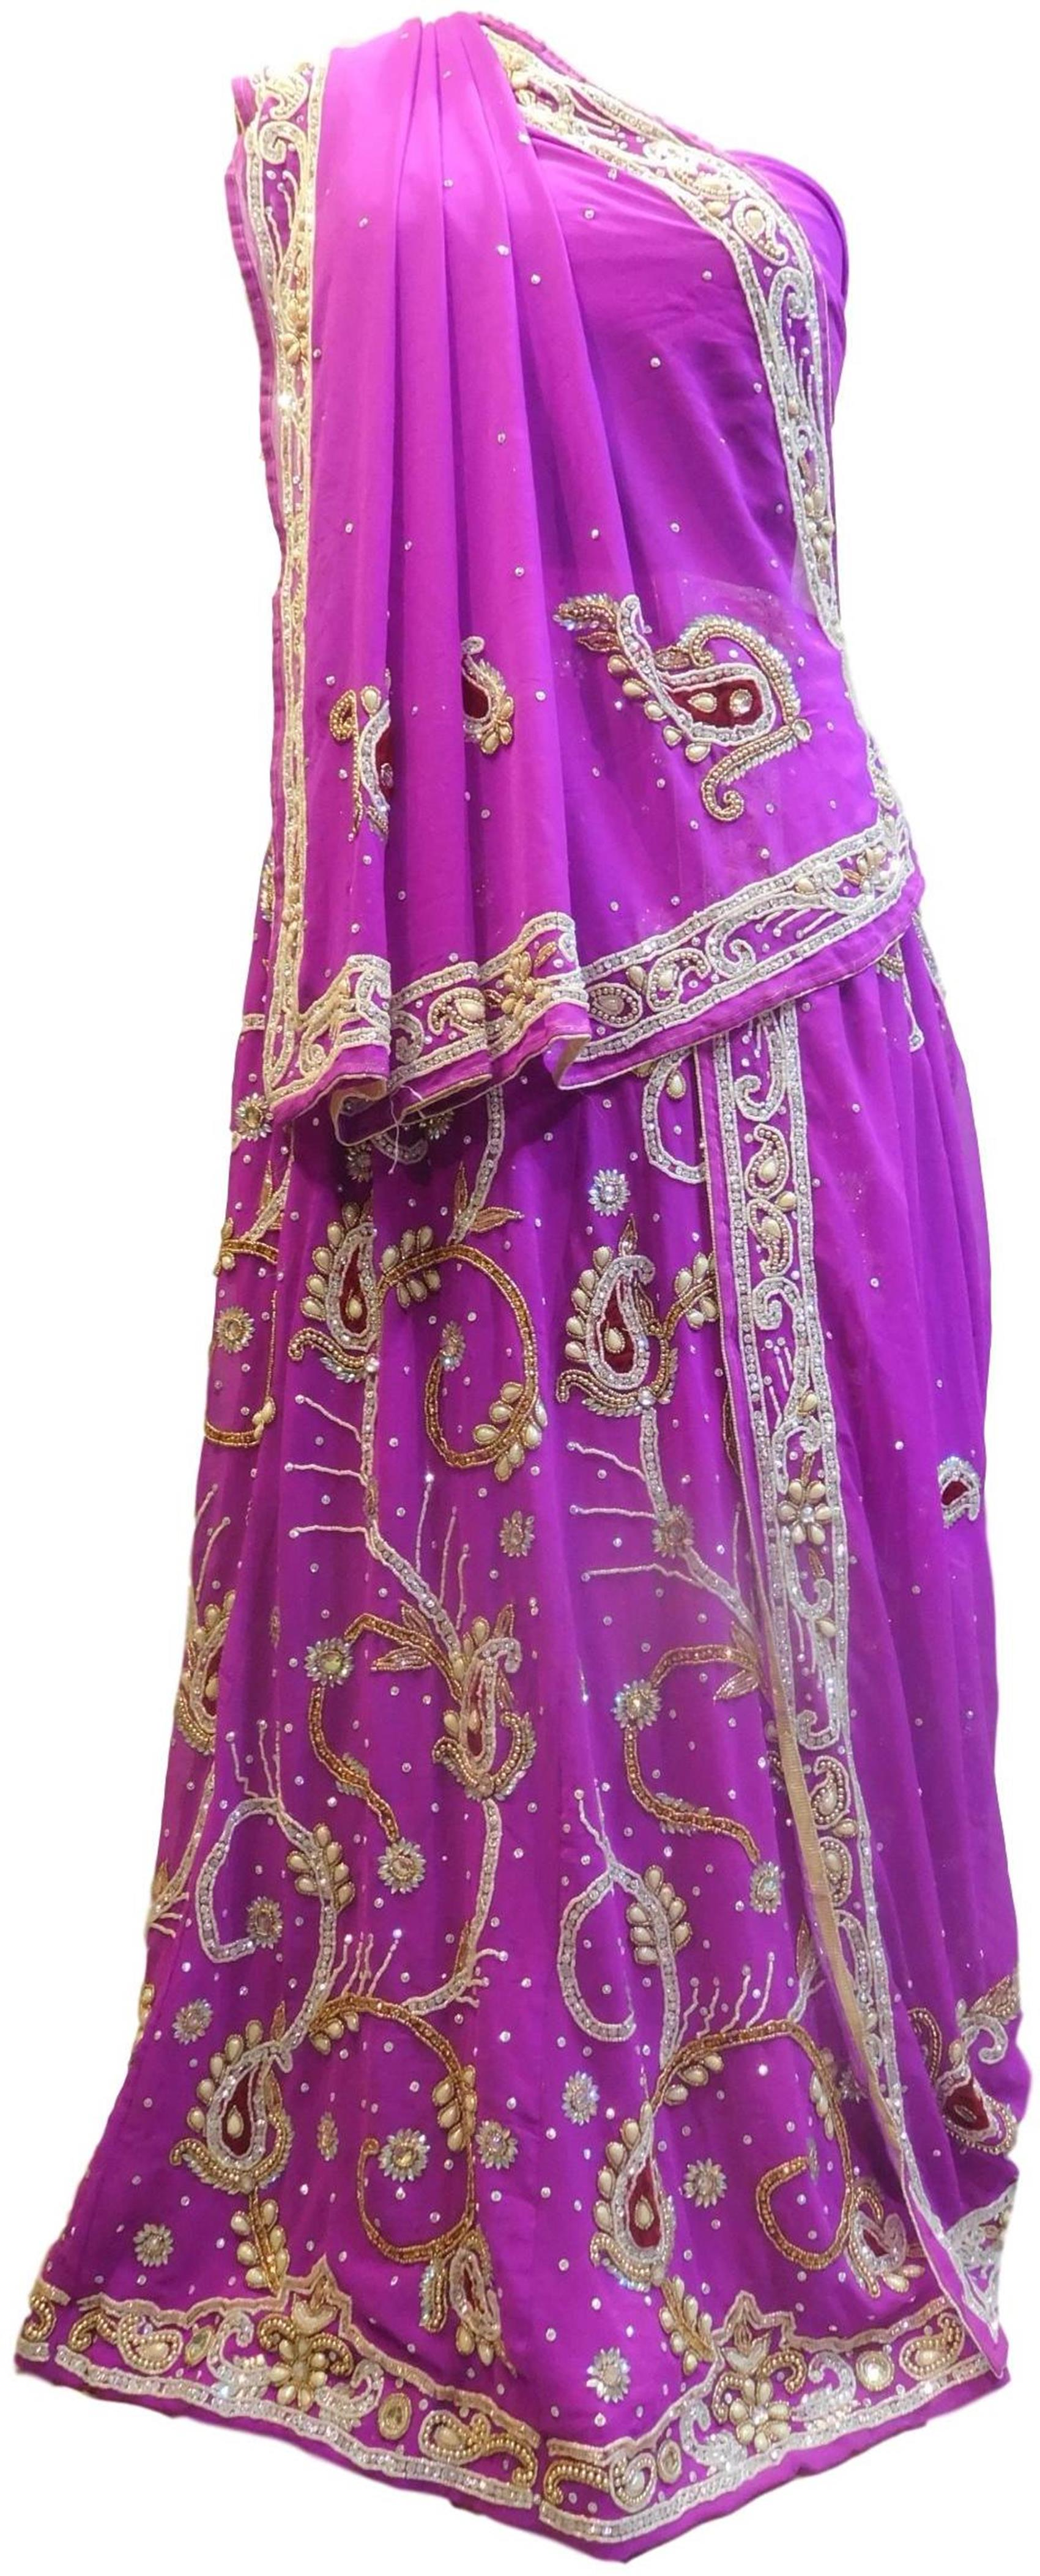 Violet Designer Wedding Partywear Georgette Bullion Beads Stone Pearl Hand Embroidery Work Bridal Lahenga Choli Dupatta Semistitched LAE252